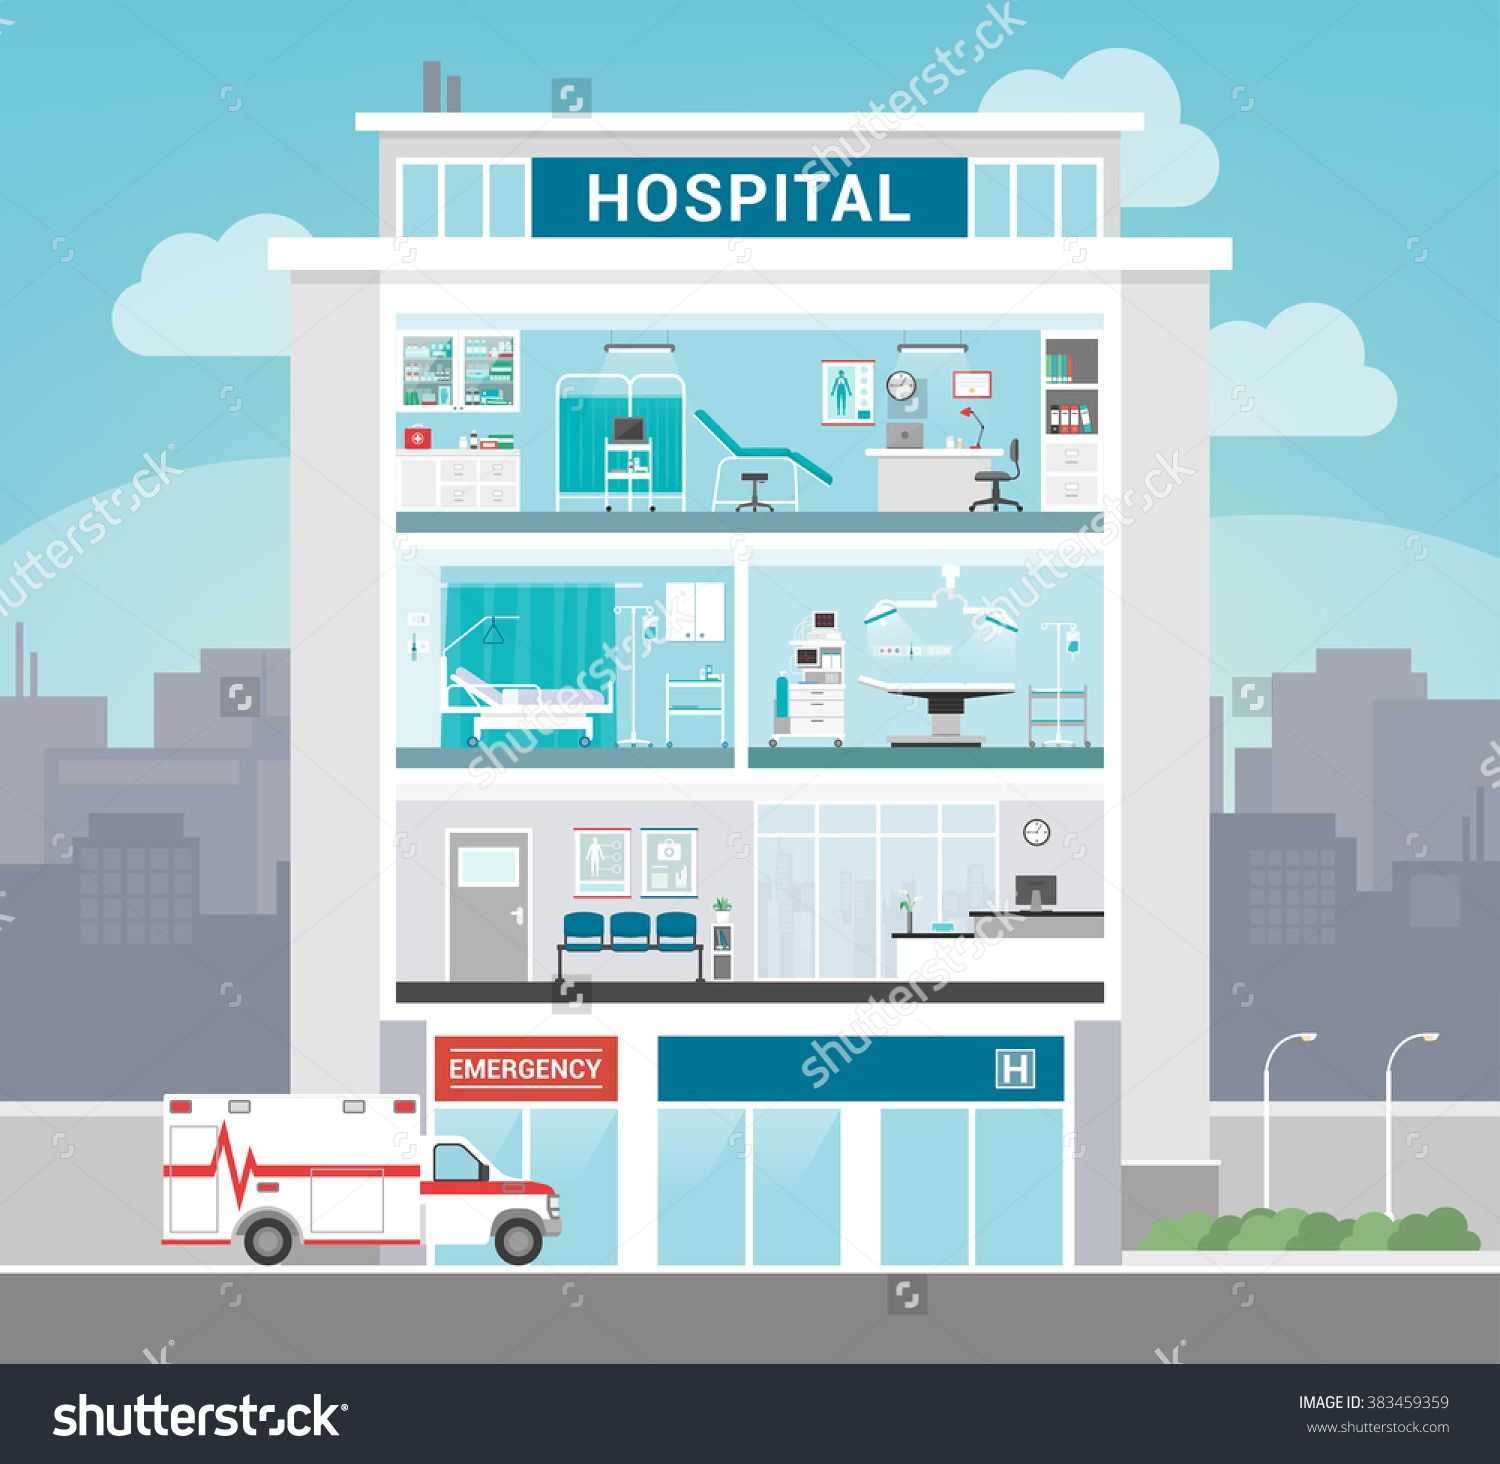 Hospital Building With Departments Office Operating Room Ward Waiting And Reception Healthcare Concept Stock Vector Illustration 383459359